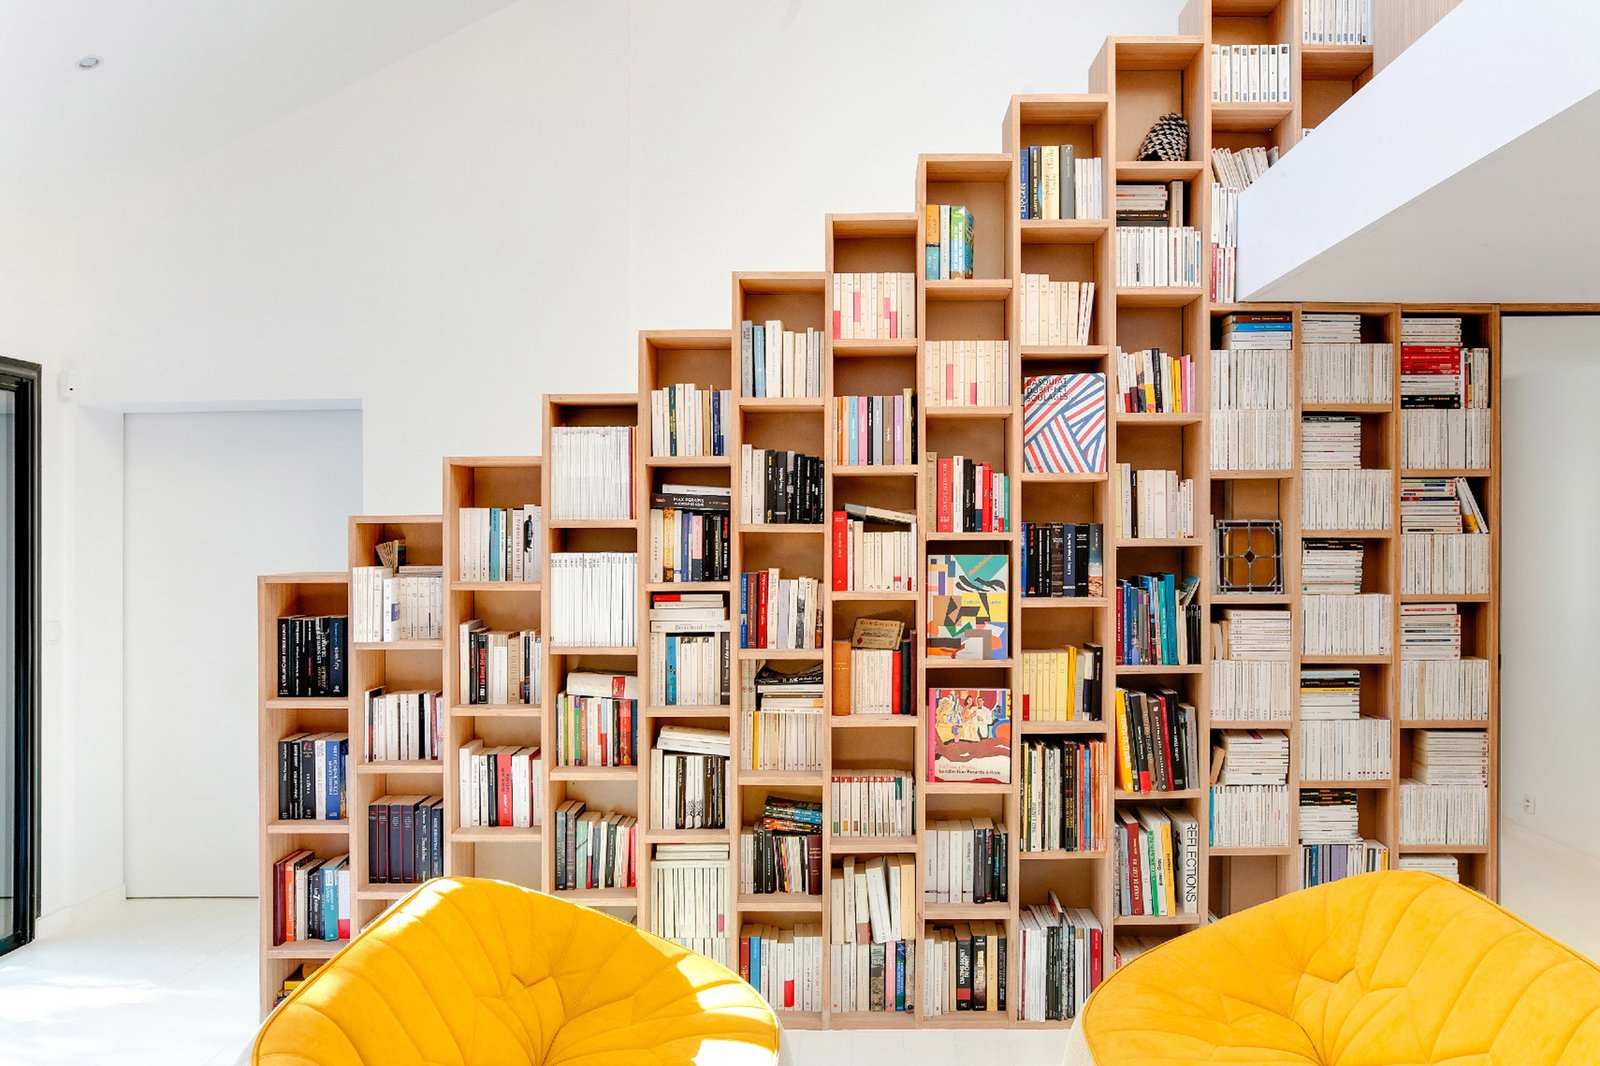 Photo 1 of 11 in 10 Ways to Solve Storage Problems in Small Spaces